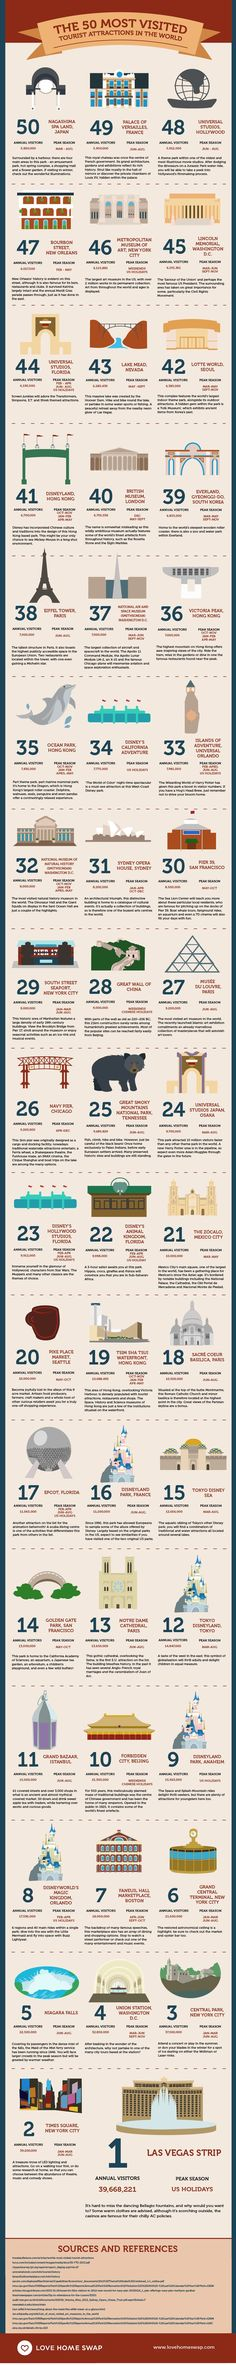 The World's 50 Most Visited Tourist Attractions in the World. I've been lucky enough to have been to 20 of these places (Disney is on here a lot...)!: